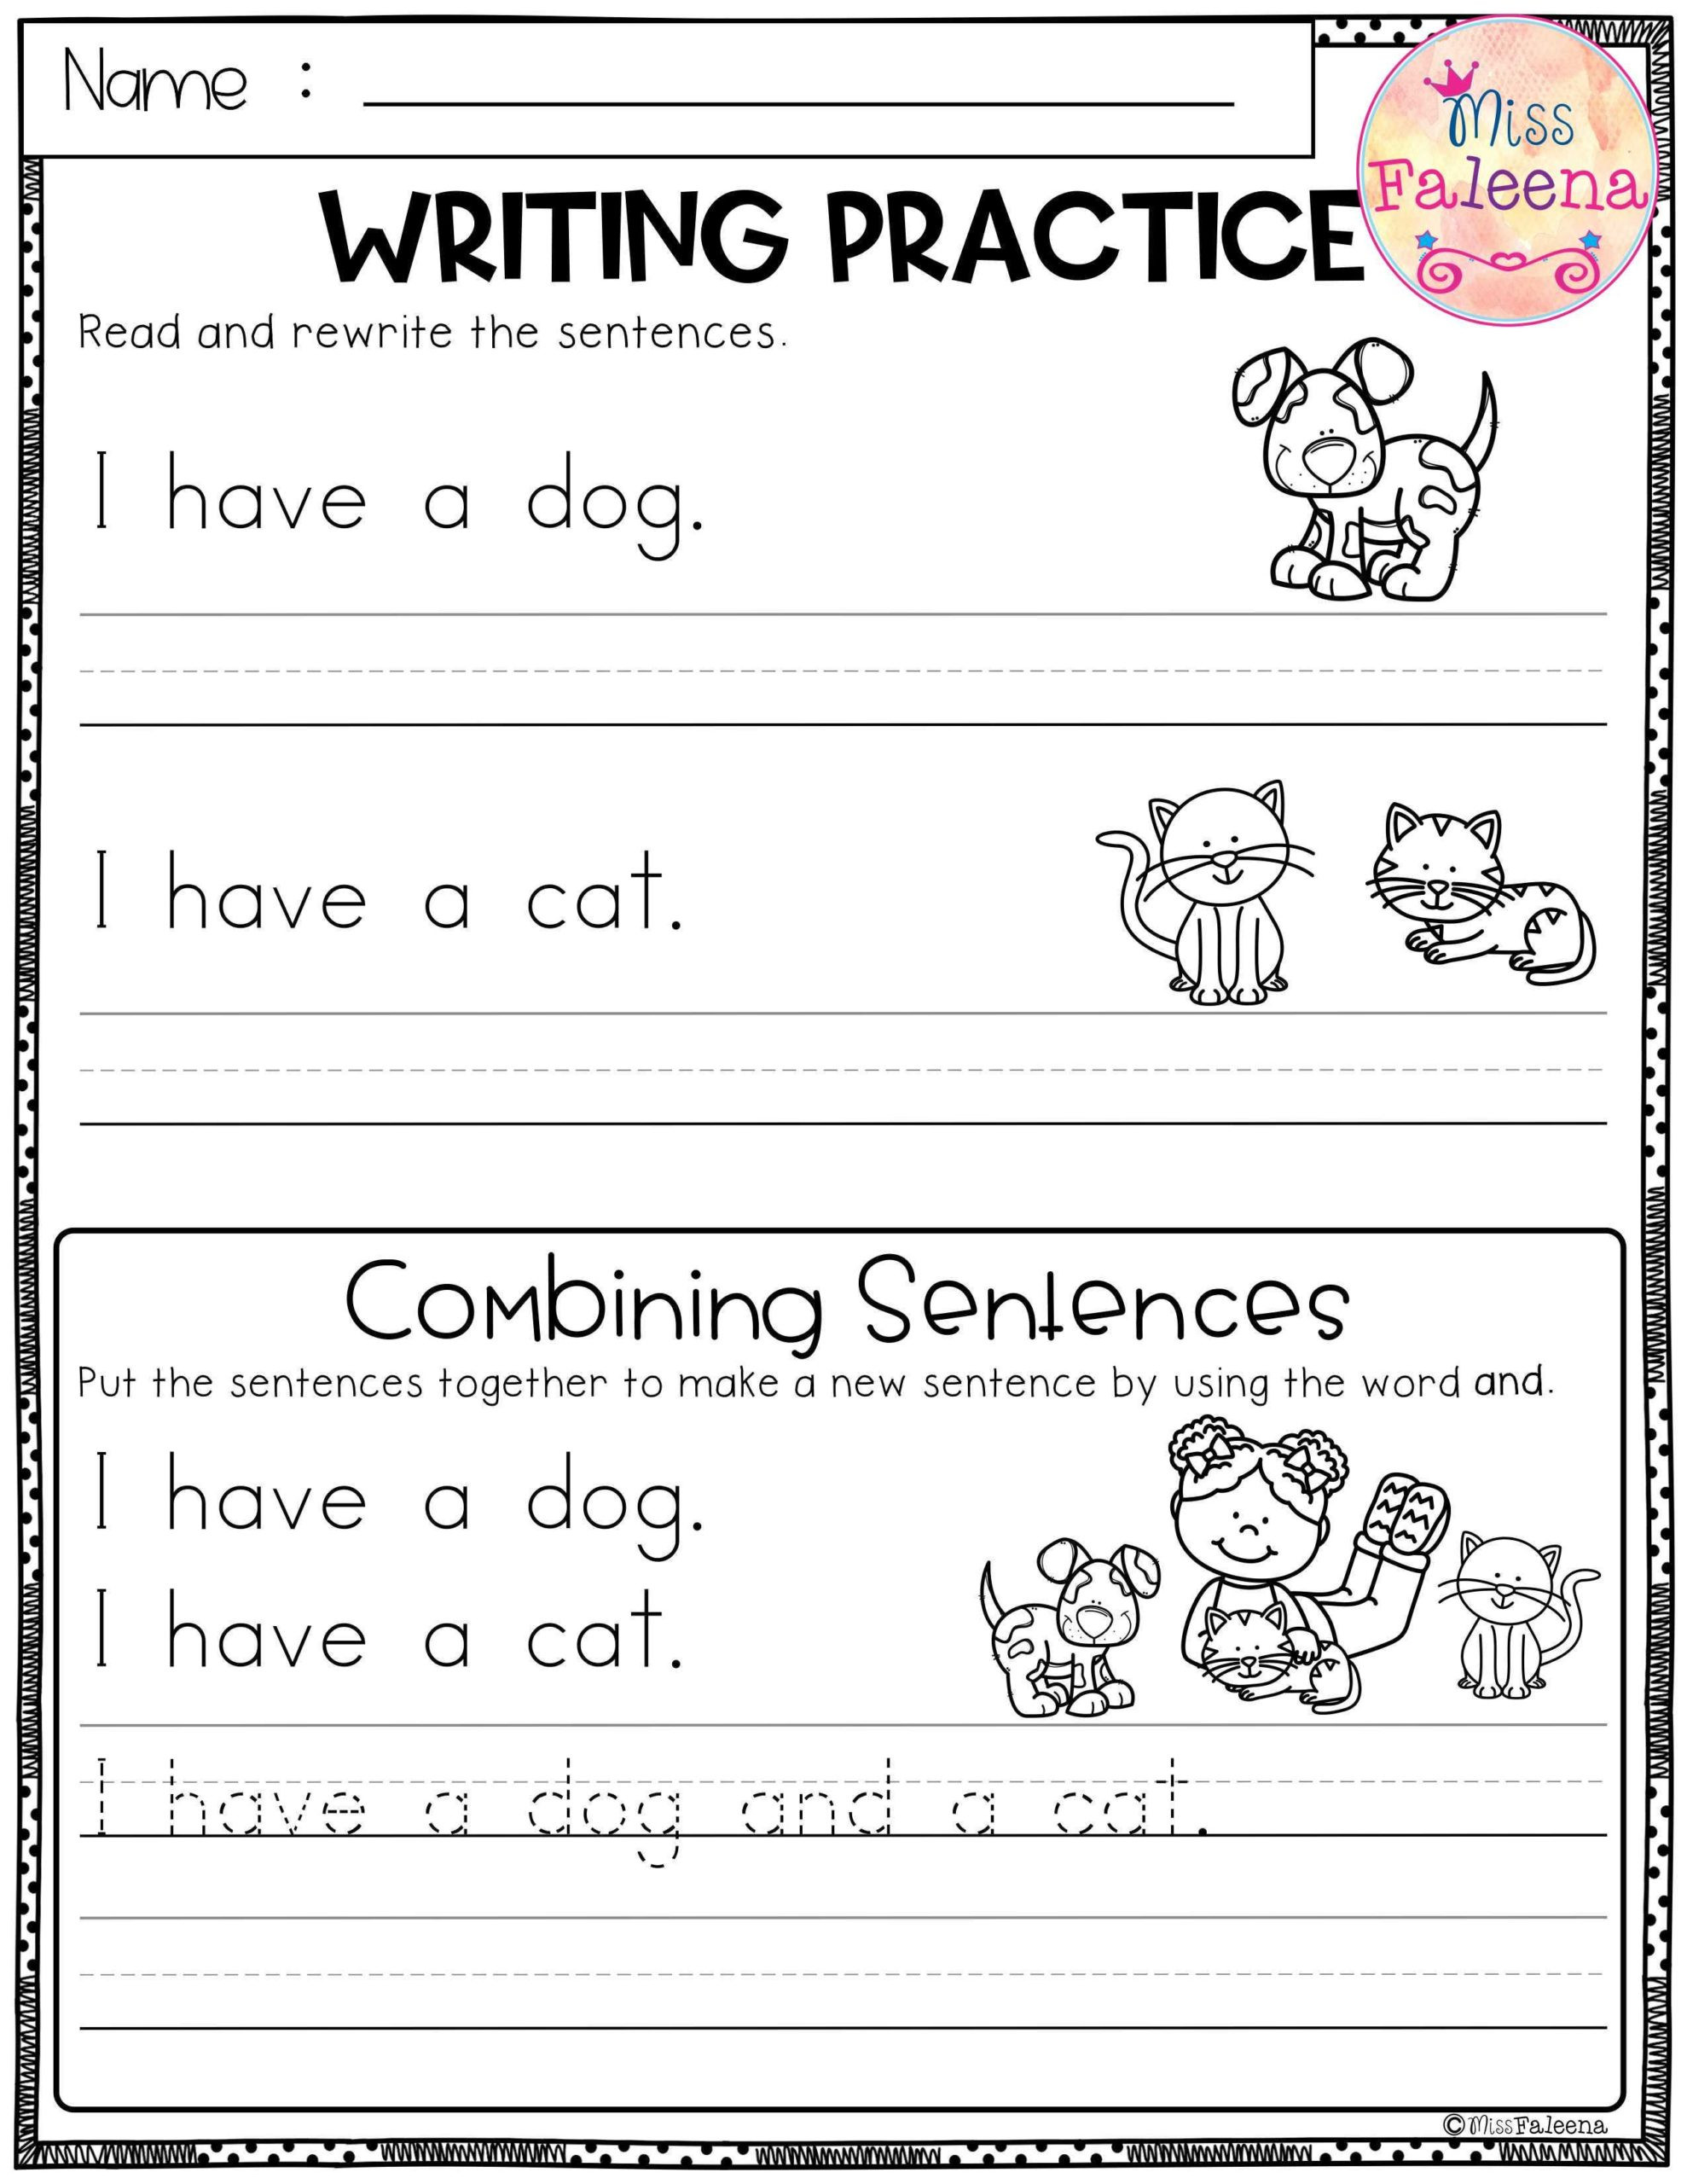 Combining Sentences Worksheets 5th Grade Free Writing Practice Bining Sentences Sentence